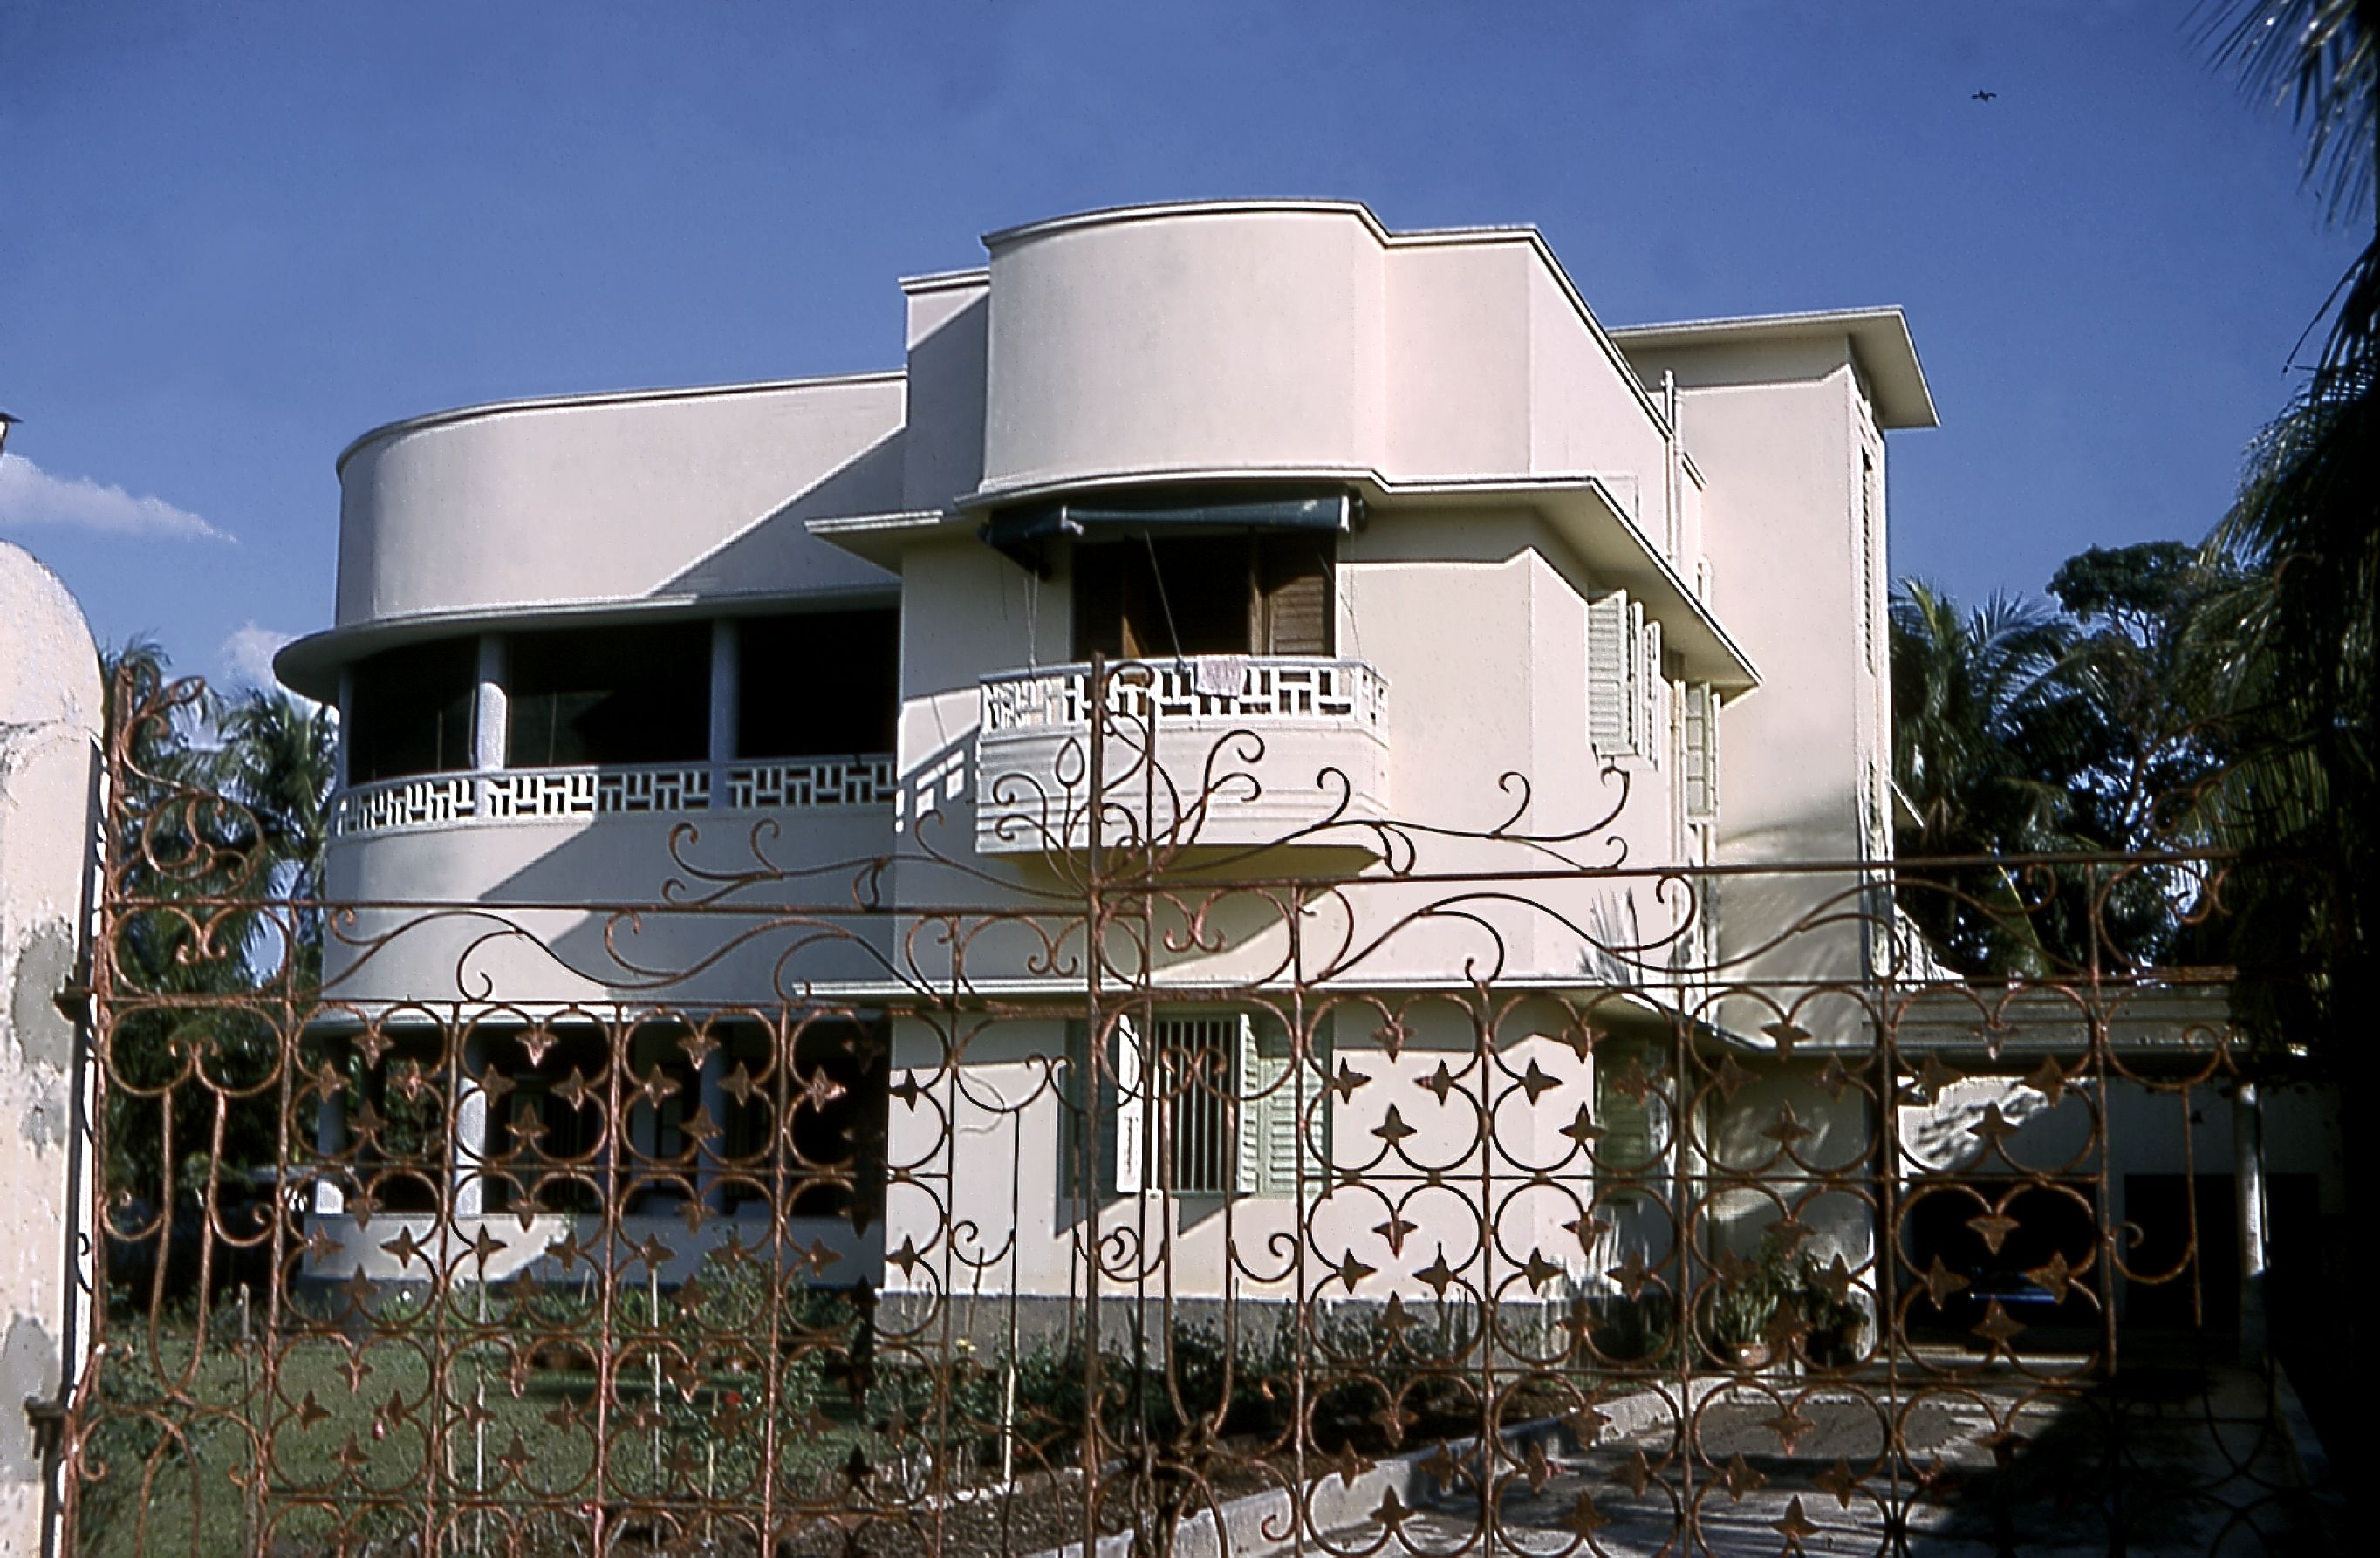 House design in bangladesh - Old Reed Hill House Dacca East Pakistan Became Bangladesh 1971